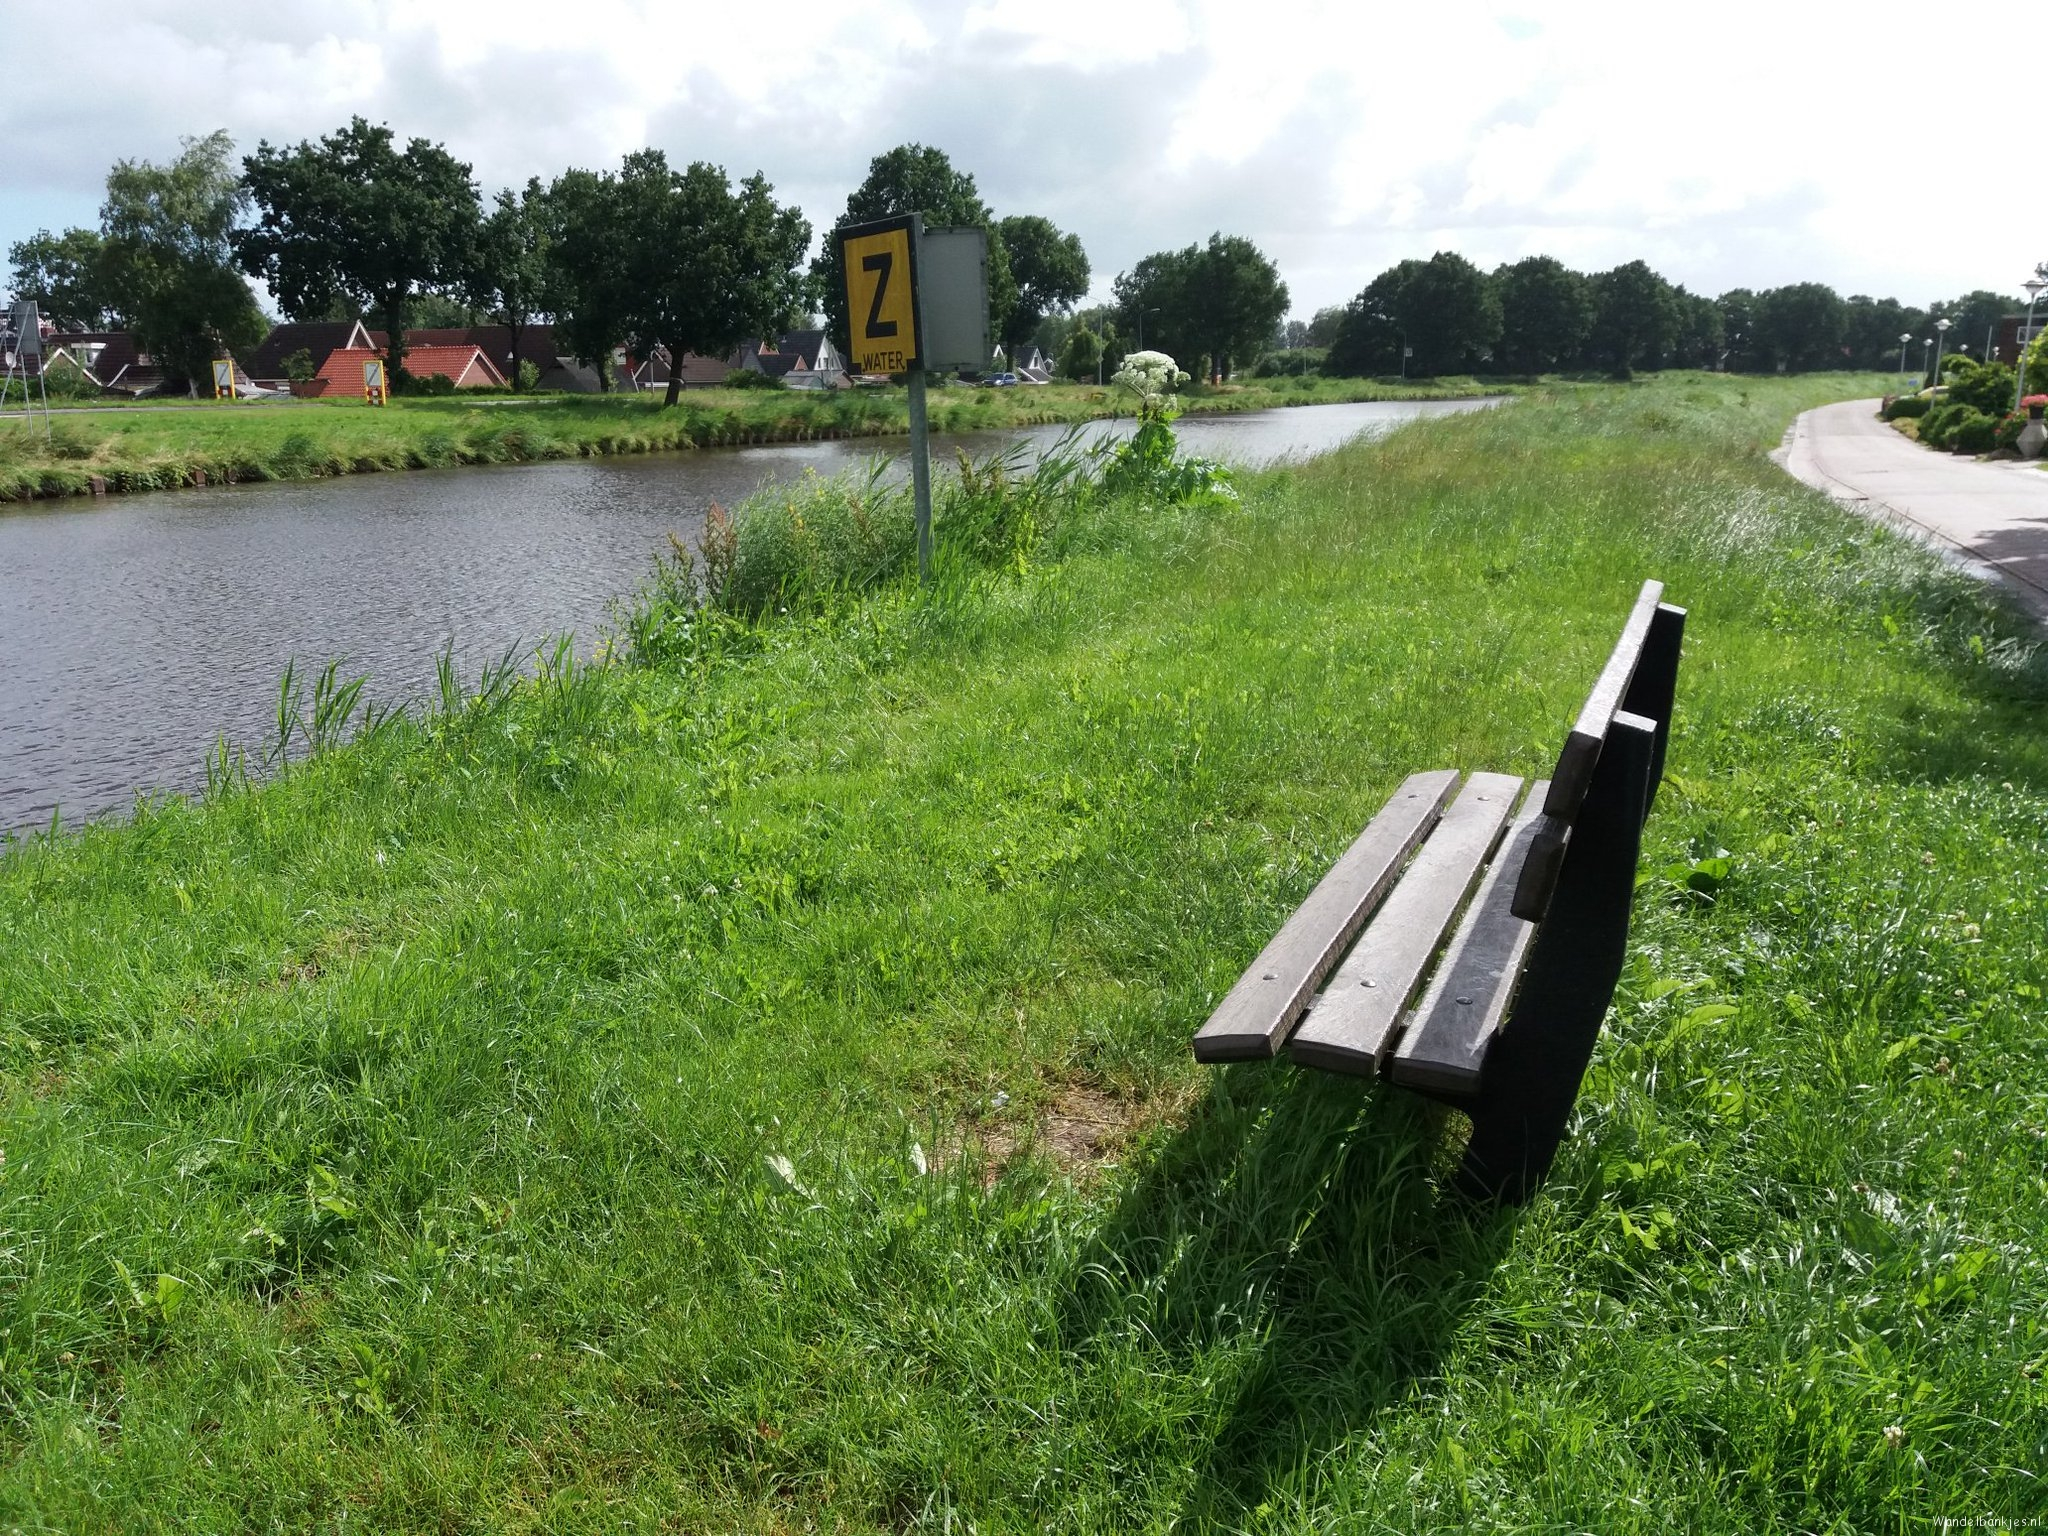 rt-walkingwithwar-walking-benches-sawmilllaan-scheemda -view-on-winplashepep-https-t-co-tdz1mbmyth